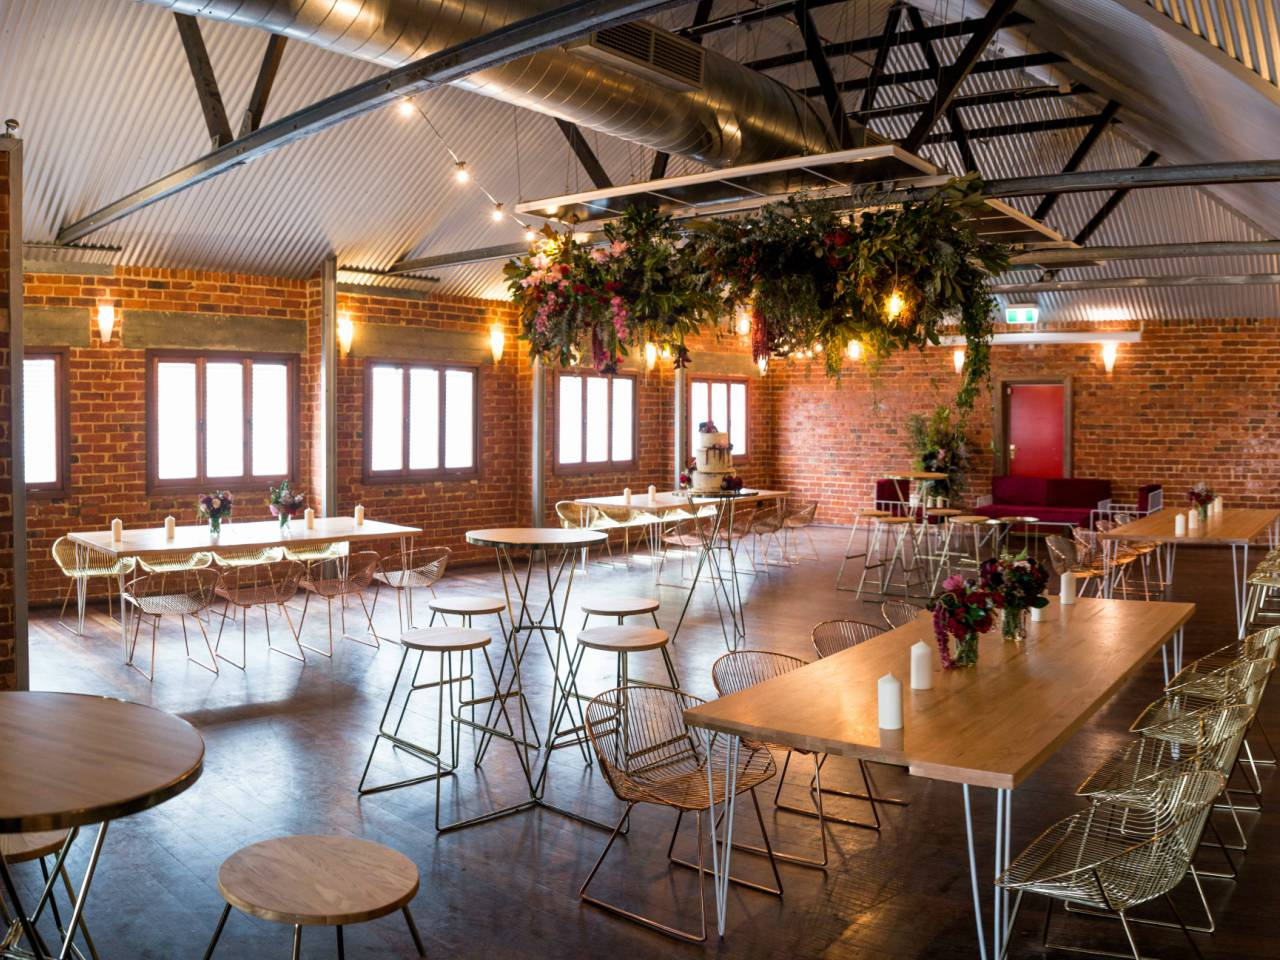 A Beautiful Wooden And Brick Room With Lights And Tables.